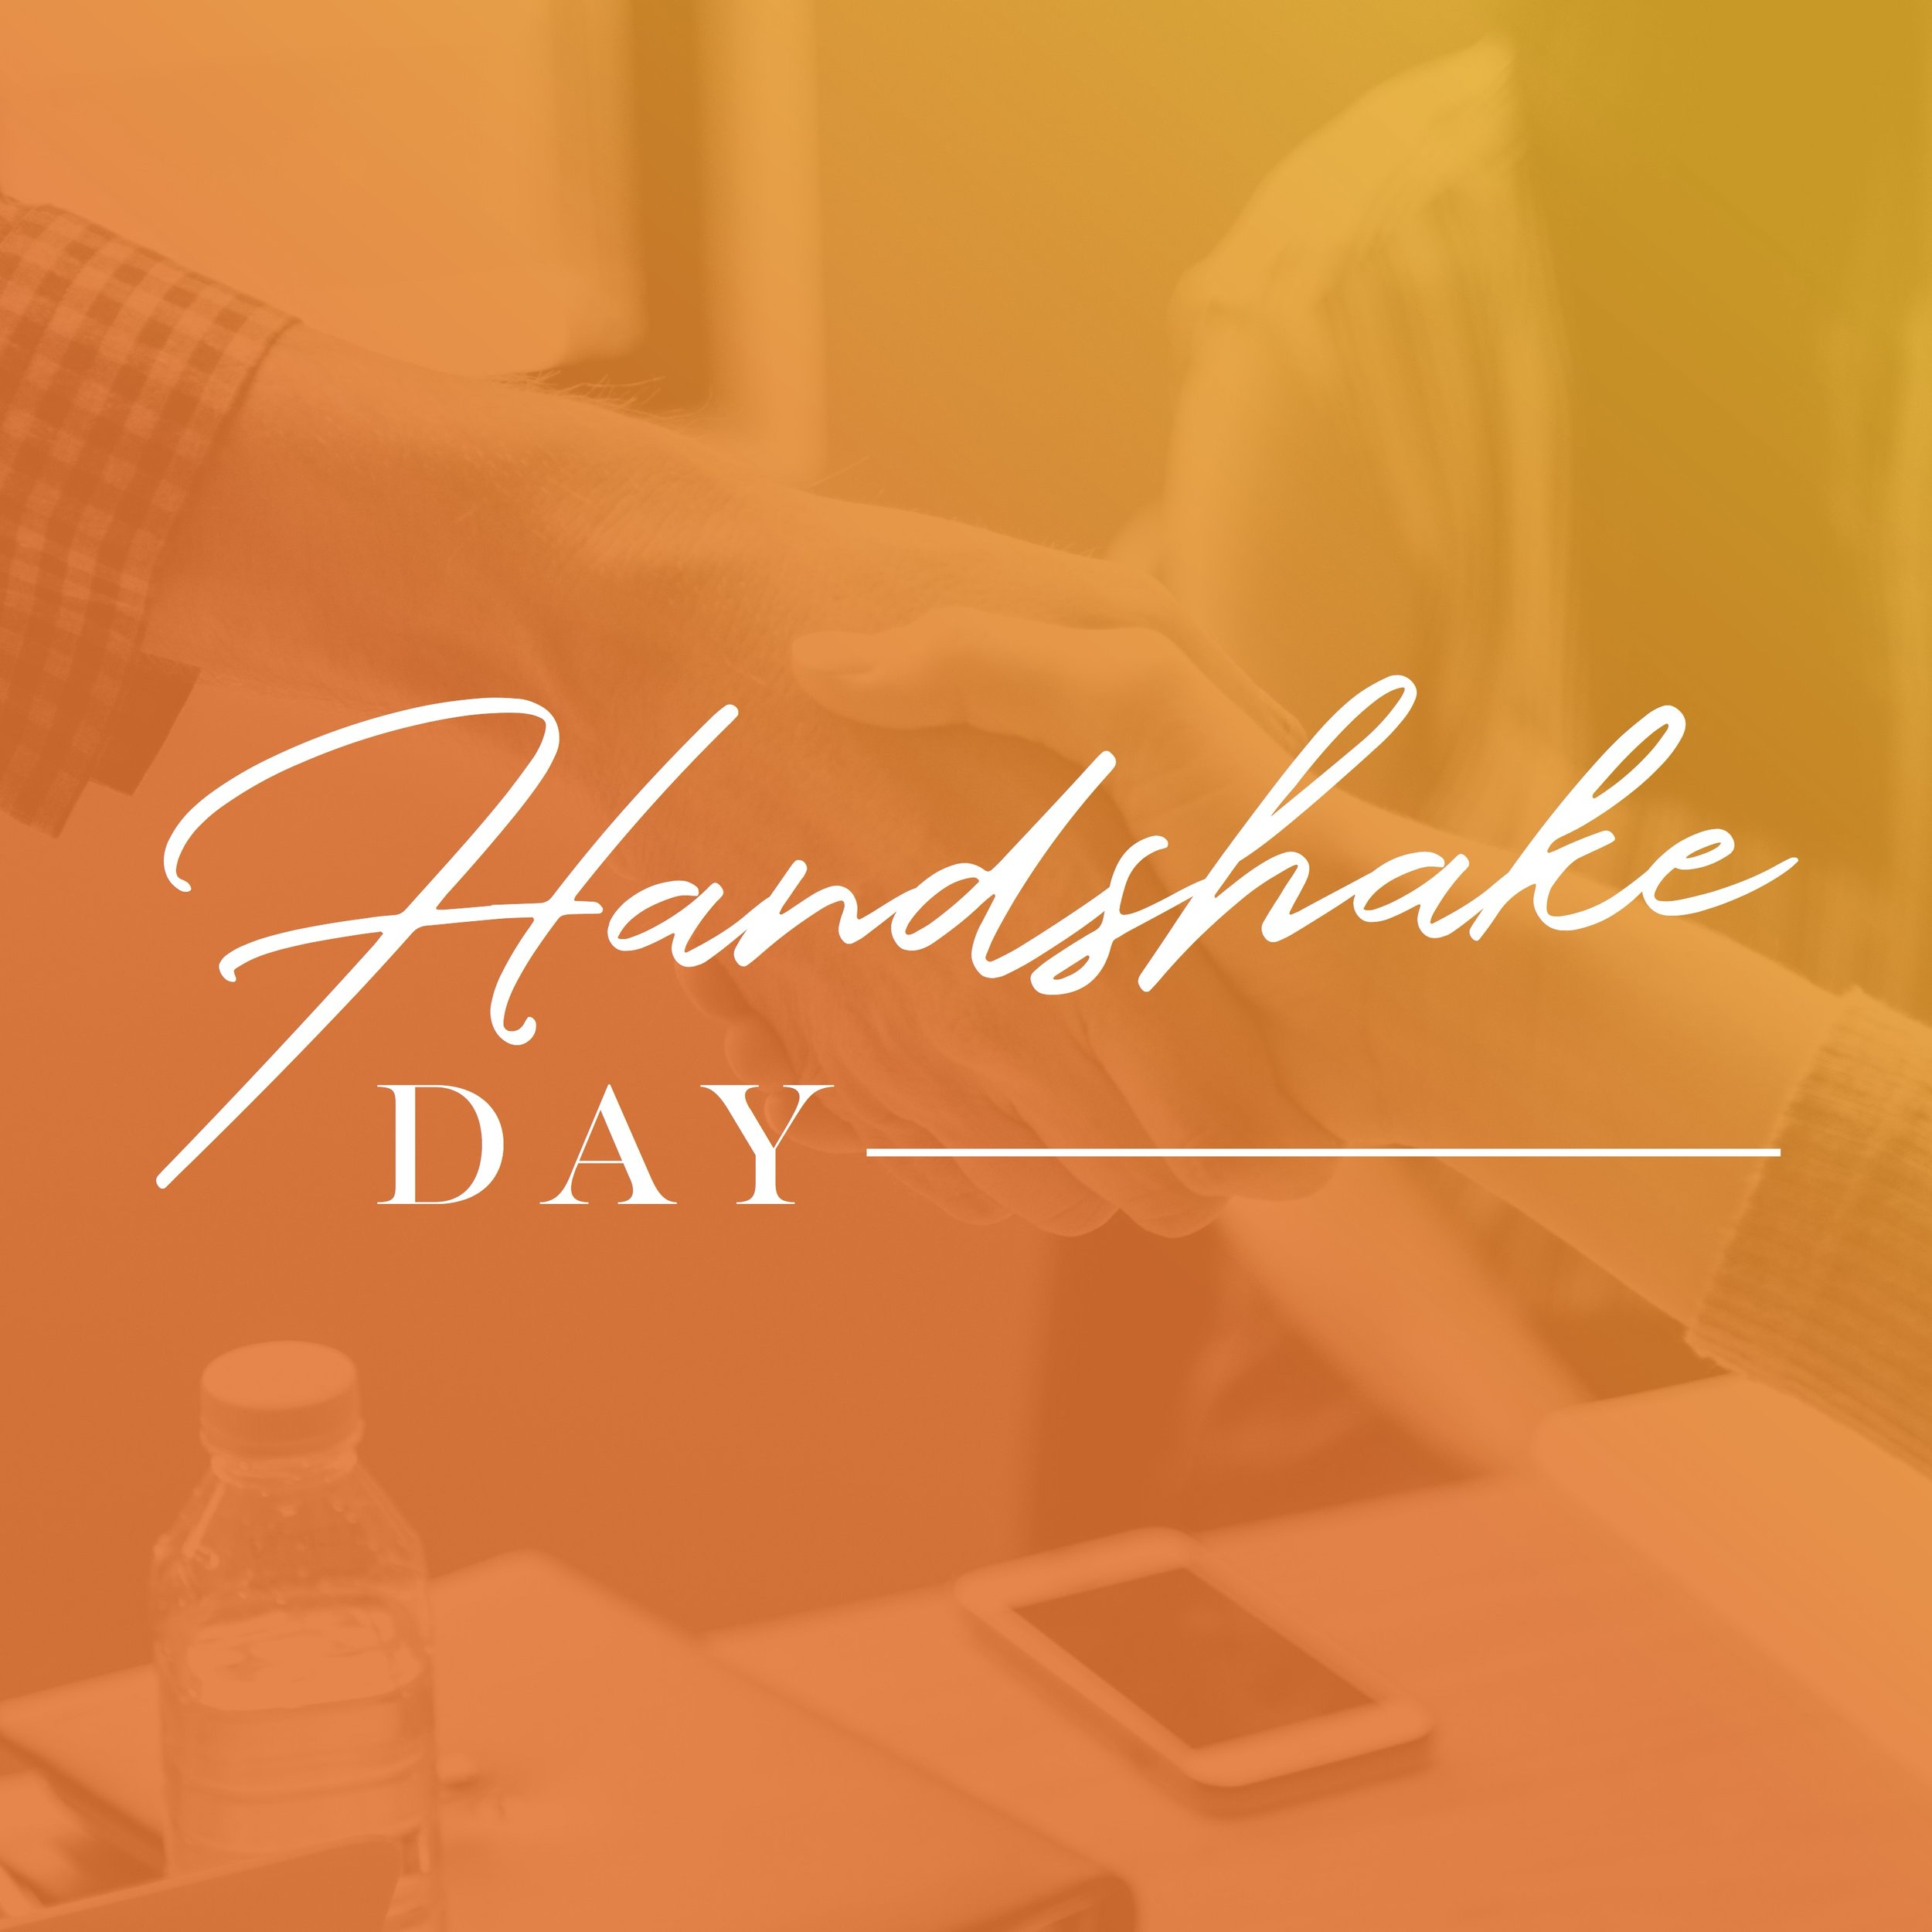 June 27 - #HandshakeDay  A firm handshake is a great way to make a first impression. Not too strong. Not too light. Definitely not sweaty. Sounds scary? It's not and today is #HandshakeDay so get some practice. Plus anyone coming by my office here at (name) Apartments gets a free handshake today!